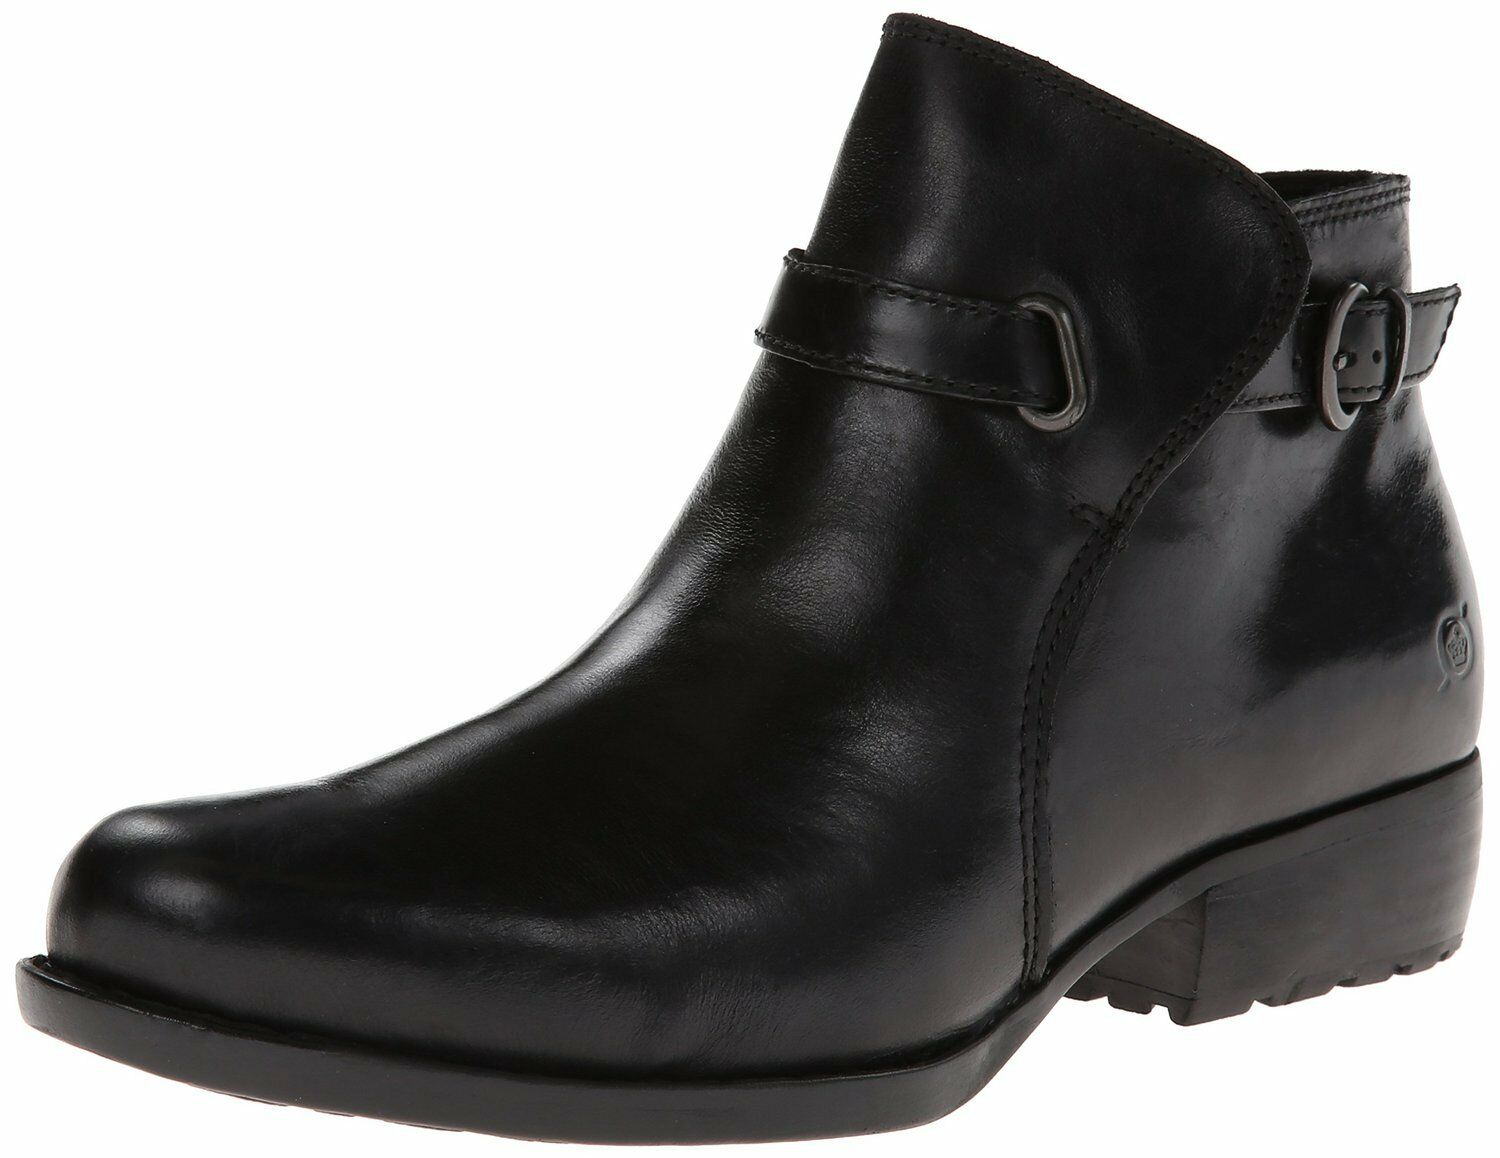 Womens Born Ankle ZipOn Boot Jem Black Leather D38603